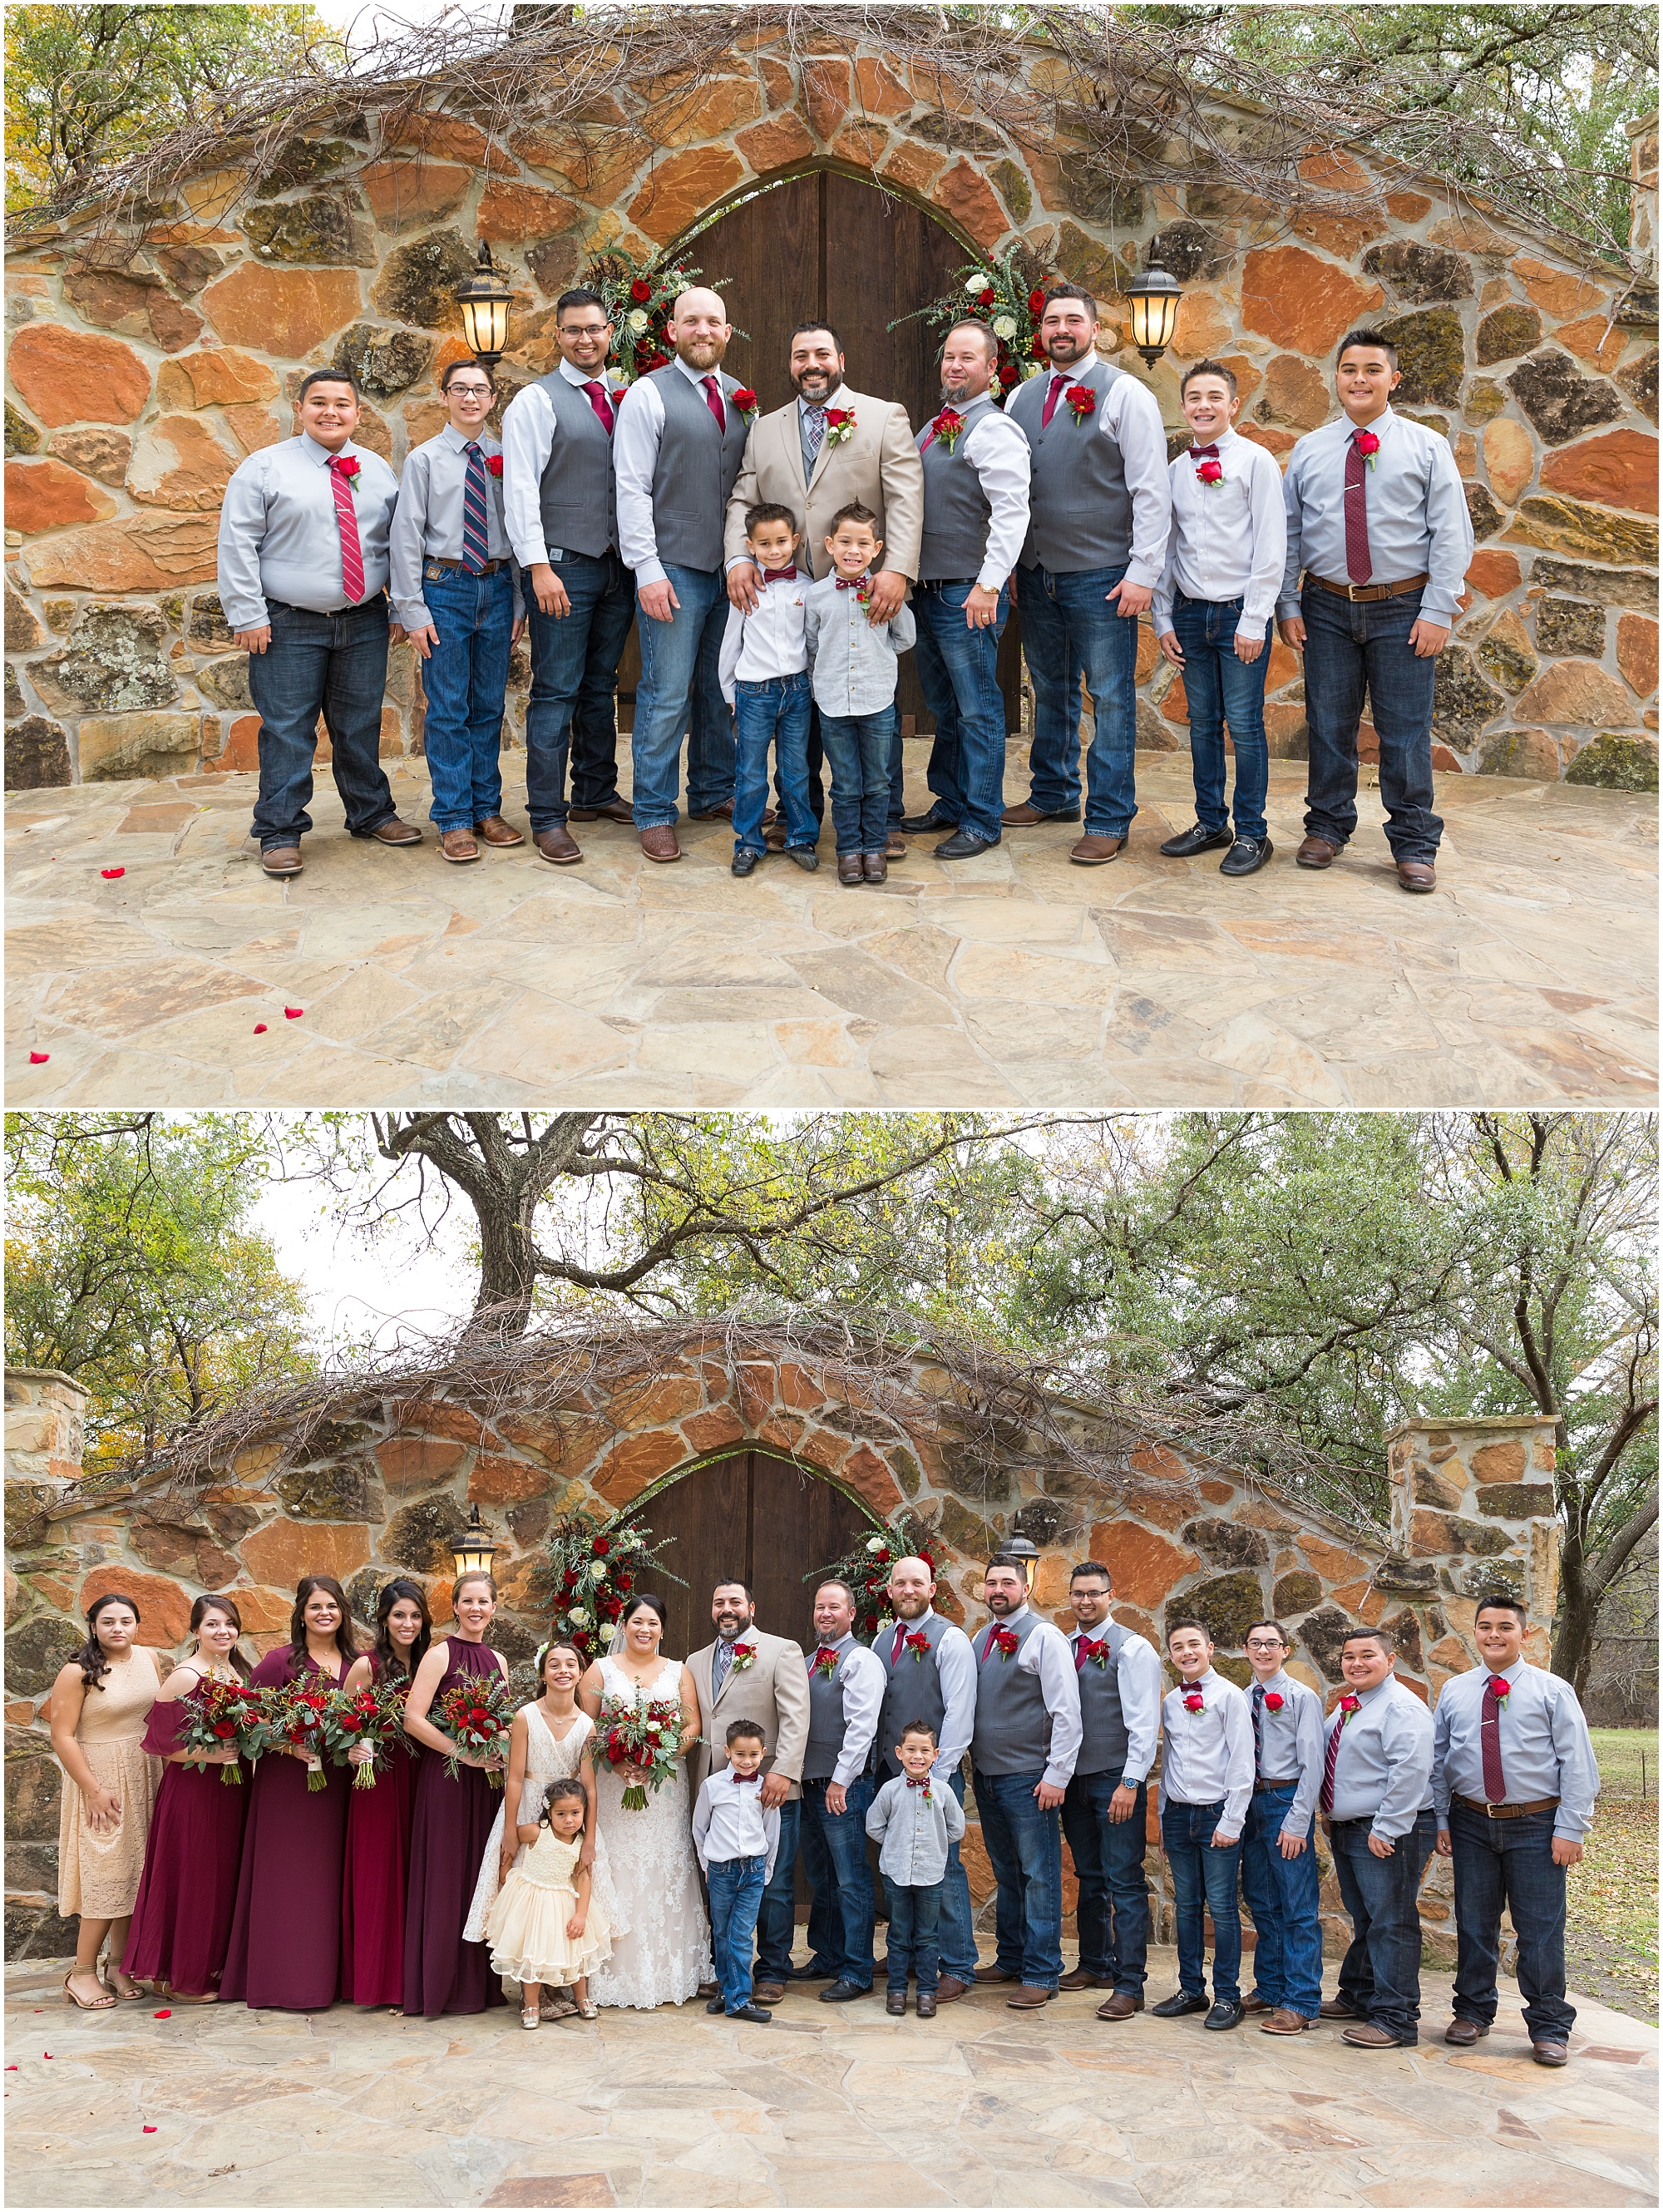 Bridal party portrait - Dove Creek Ranch in Dublin, Texas - Jason & Melaina Photography - www.jasonandmelaina.com